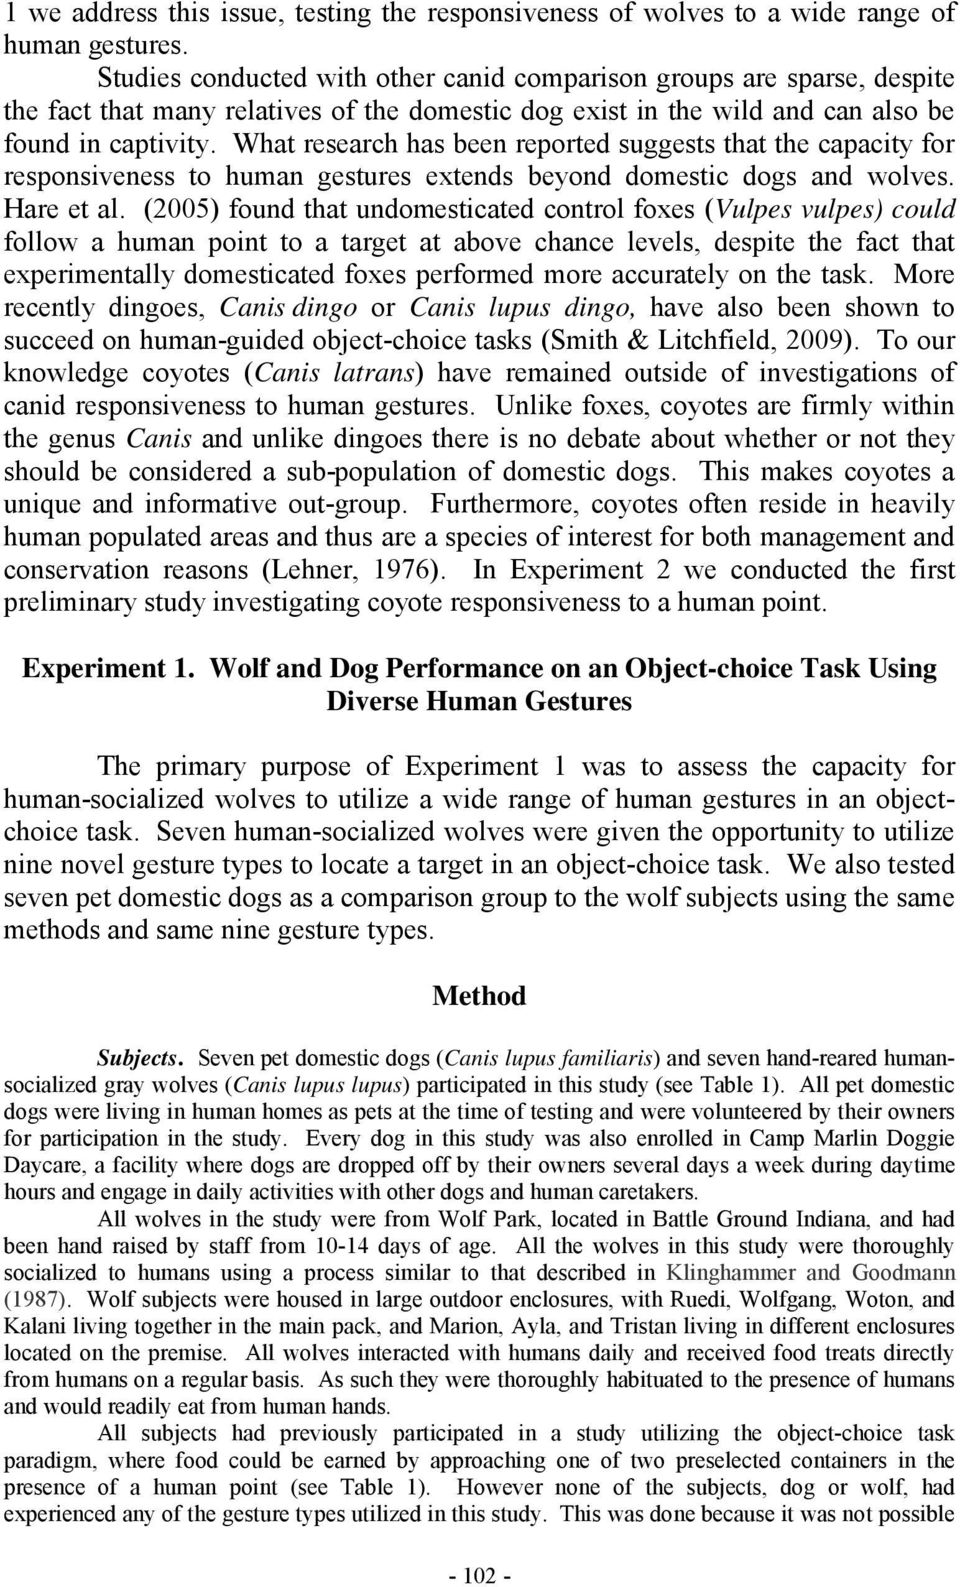 What research has been reported suggests that the capacity for responsiveness to human gestures extends beyond domestic dogs and wolves. Hare et al.